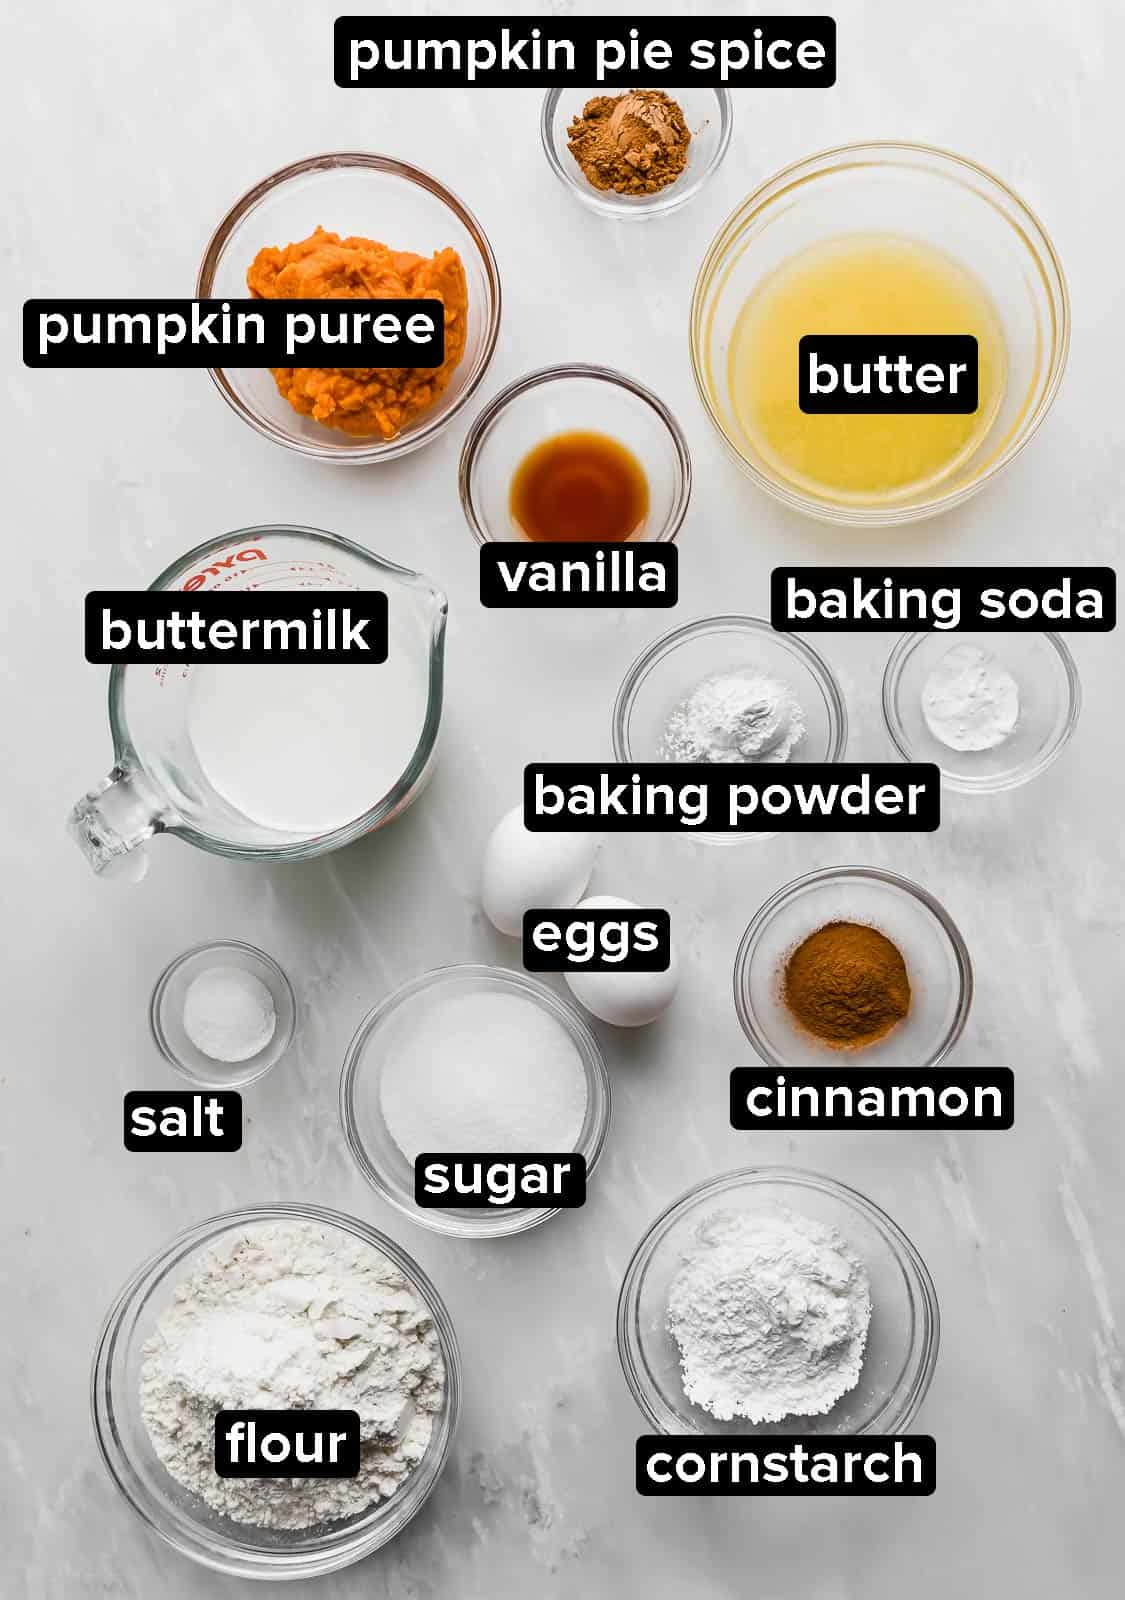 Ingredients used to make pumpkin waffles on a white background.